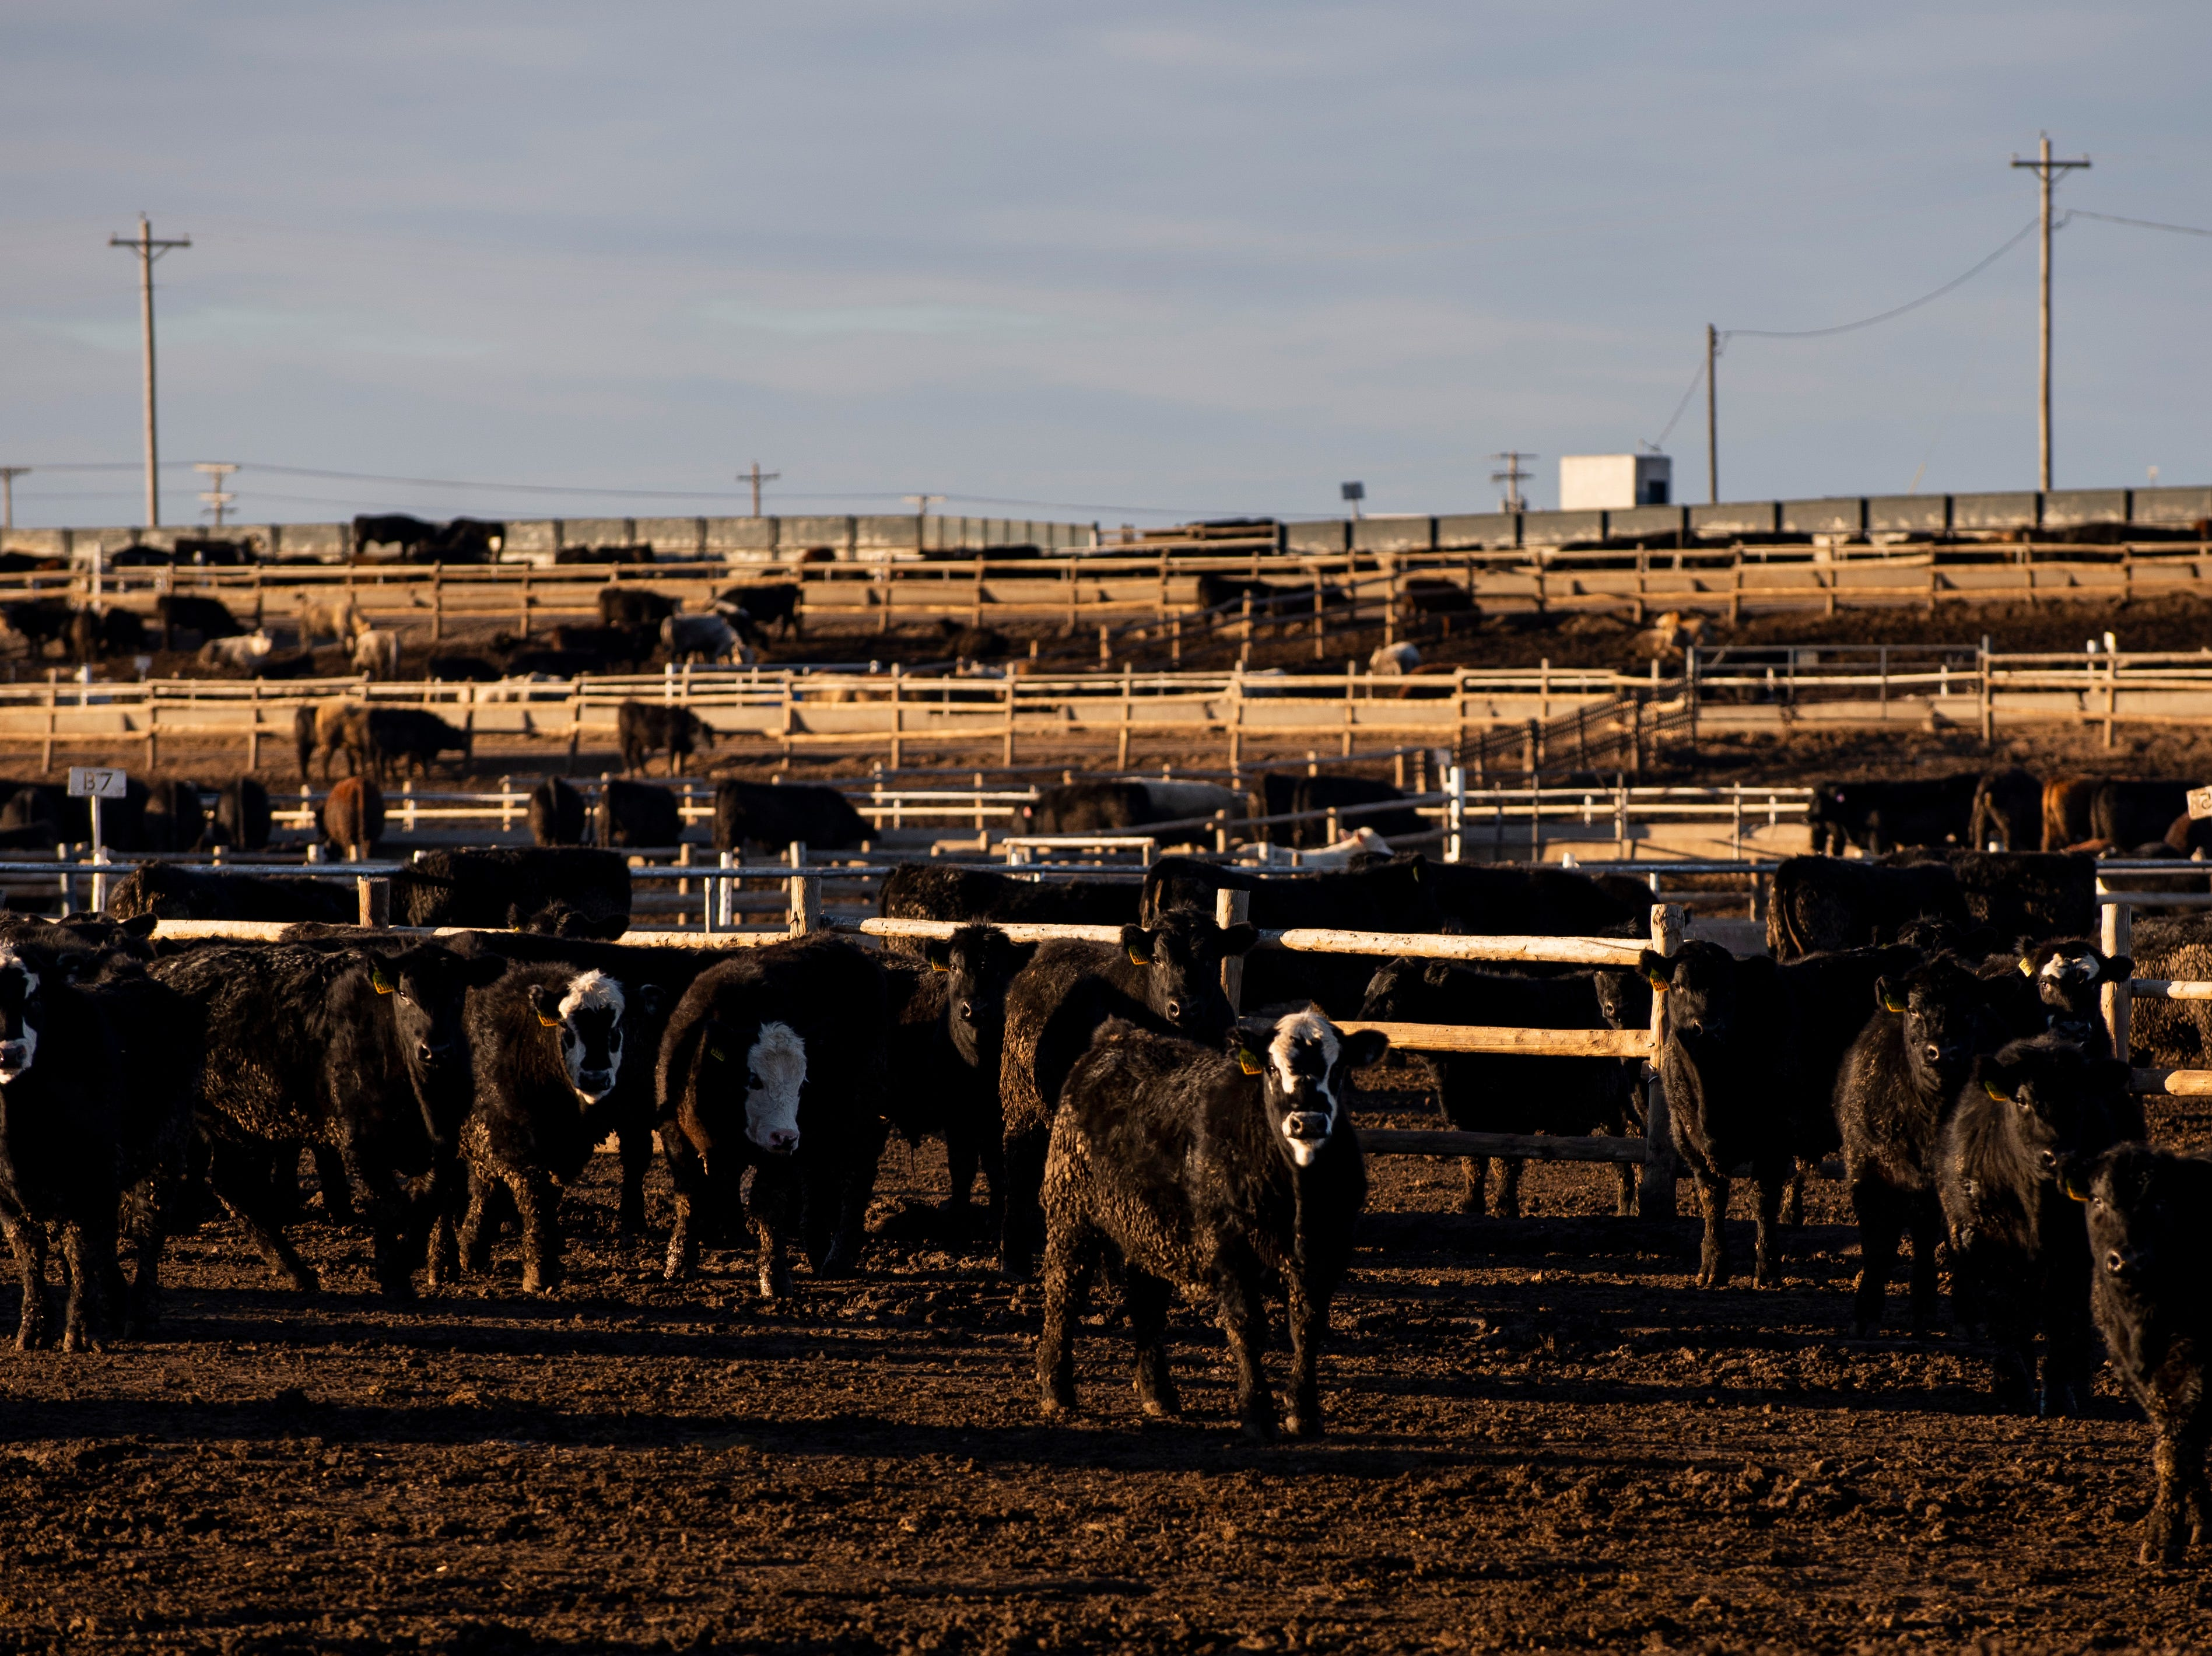 Cattle stand in pens at the Brookover Feed Yard in Garden City Wednesday on Jan. 23, 2019. The city, which is near the Tyson Fresh Meats meatpacking plant, is home to a large number of resettled refugees who work at the plant.